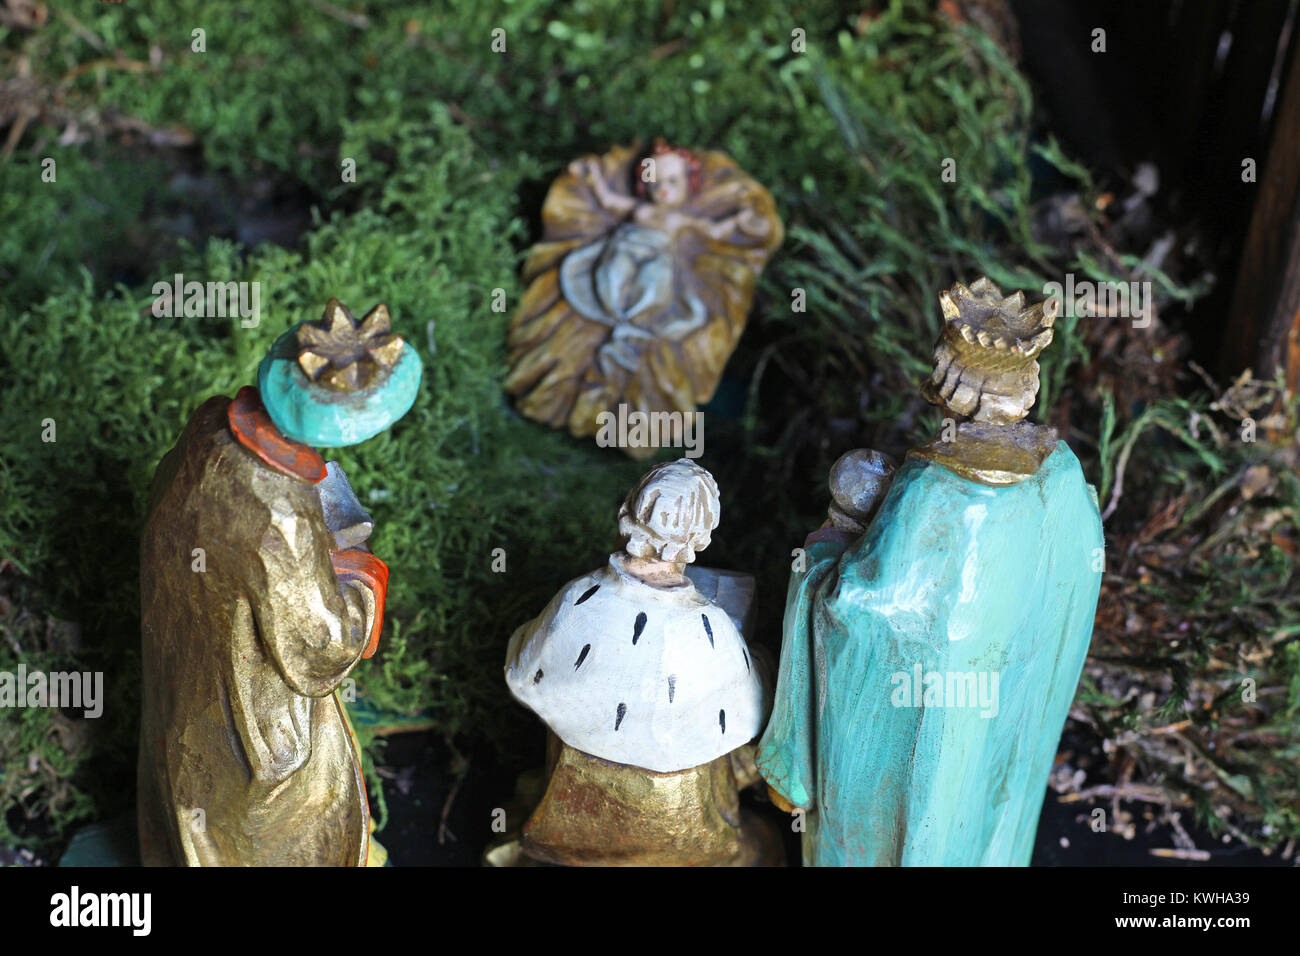 the three holy kings are bringing gifts to the new born child Jesus, rear view of the figurines, close-up - Stock Image